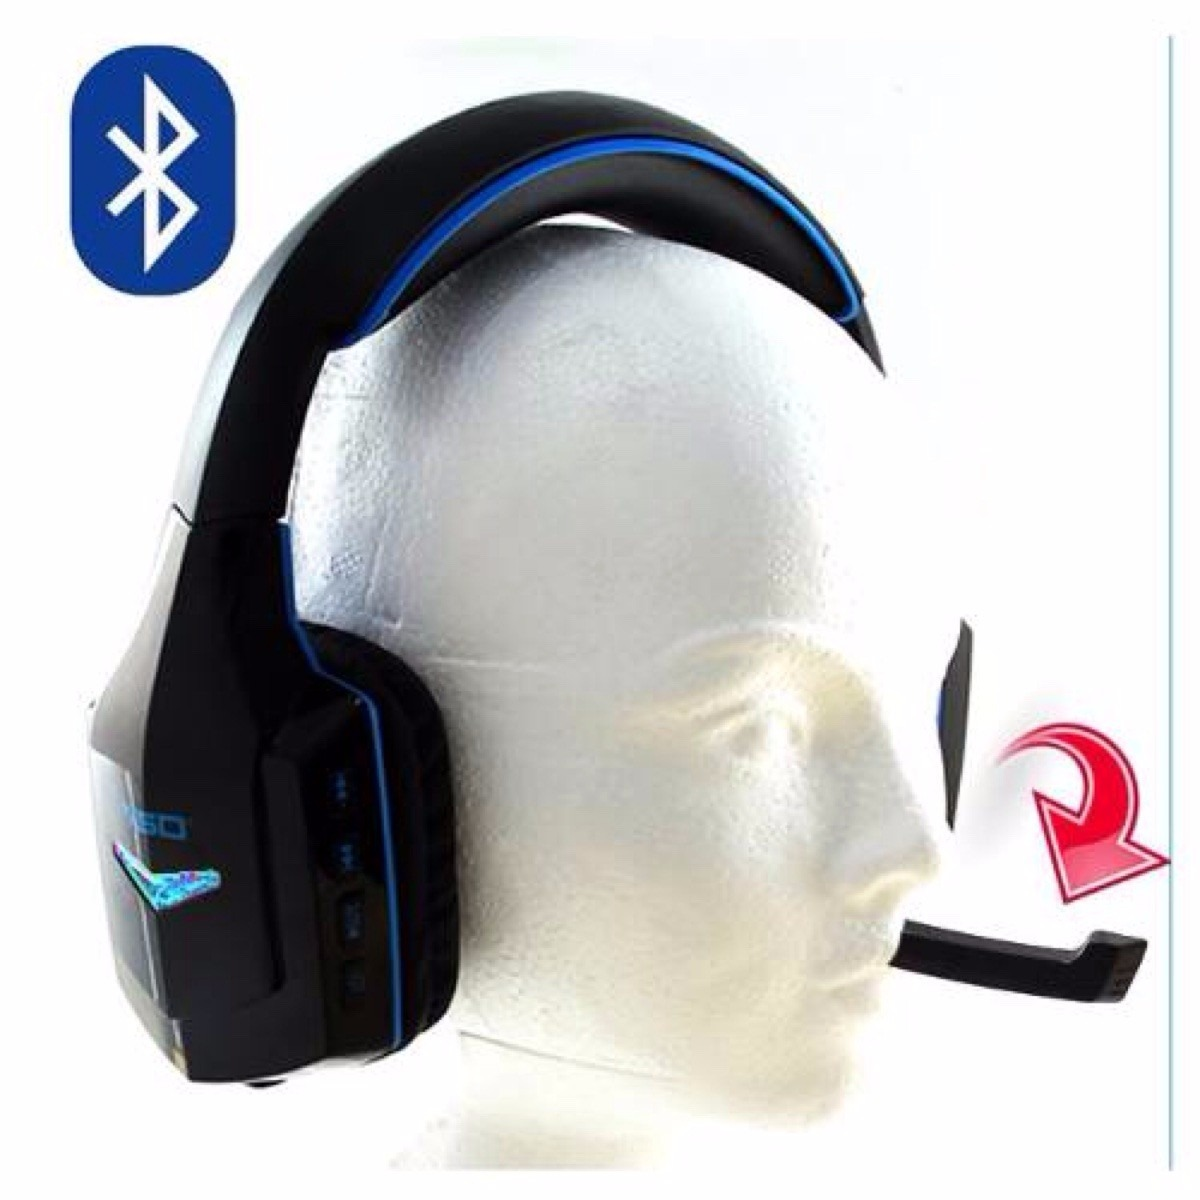 Manos Libres Bluetooth Inalambrico Audifonos Bluetooth Inalambricos Manos Libres Dj Pc Cel